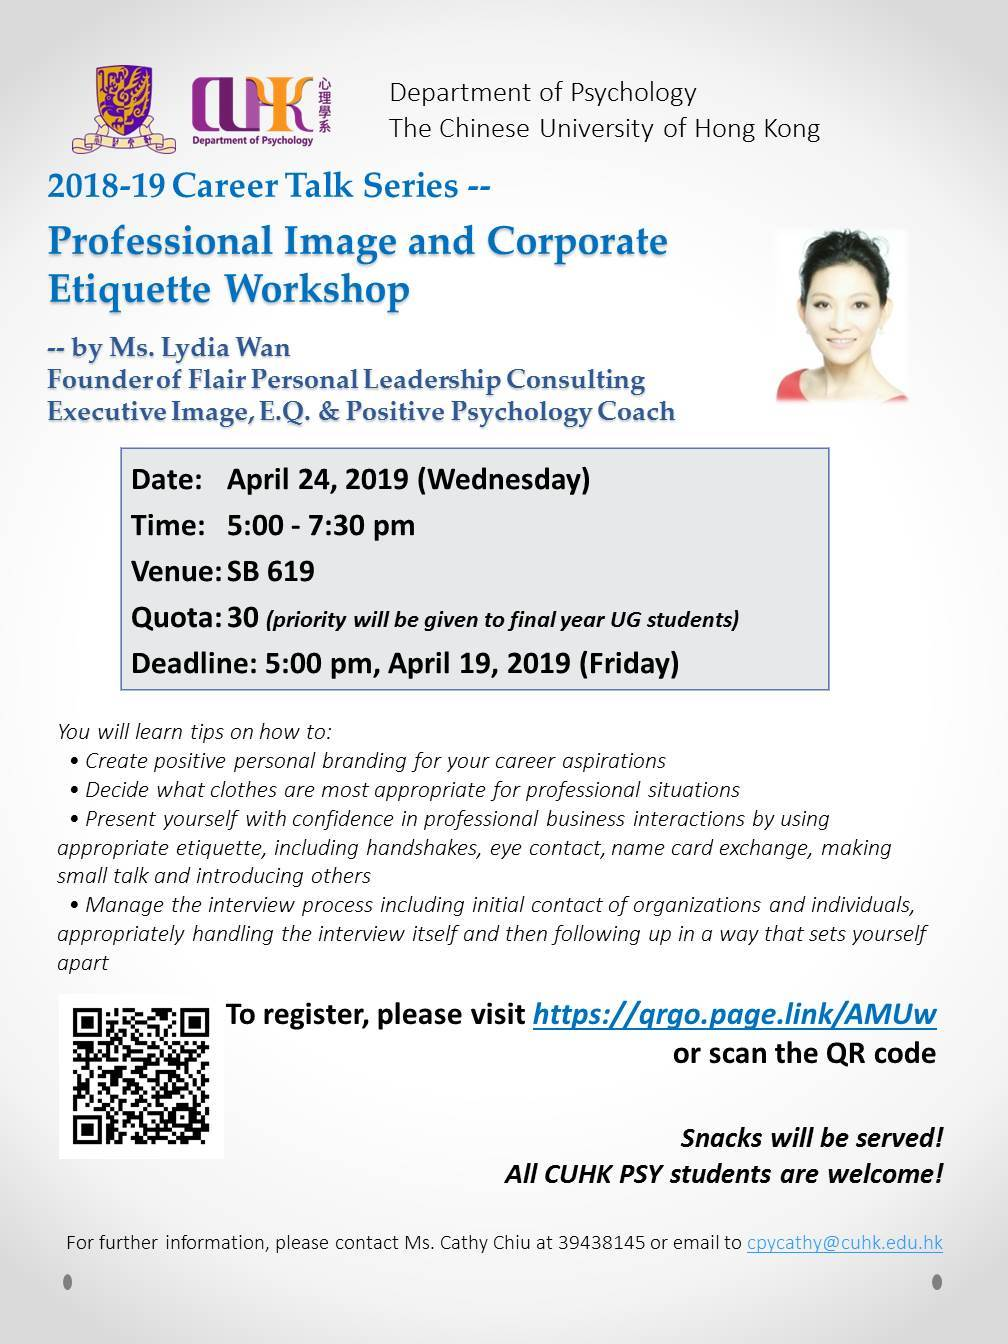 Career Talk - Professional Image and Corporate Etiquette Workshop